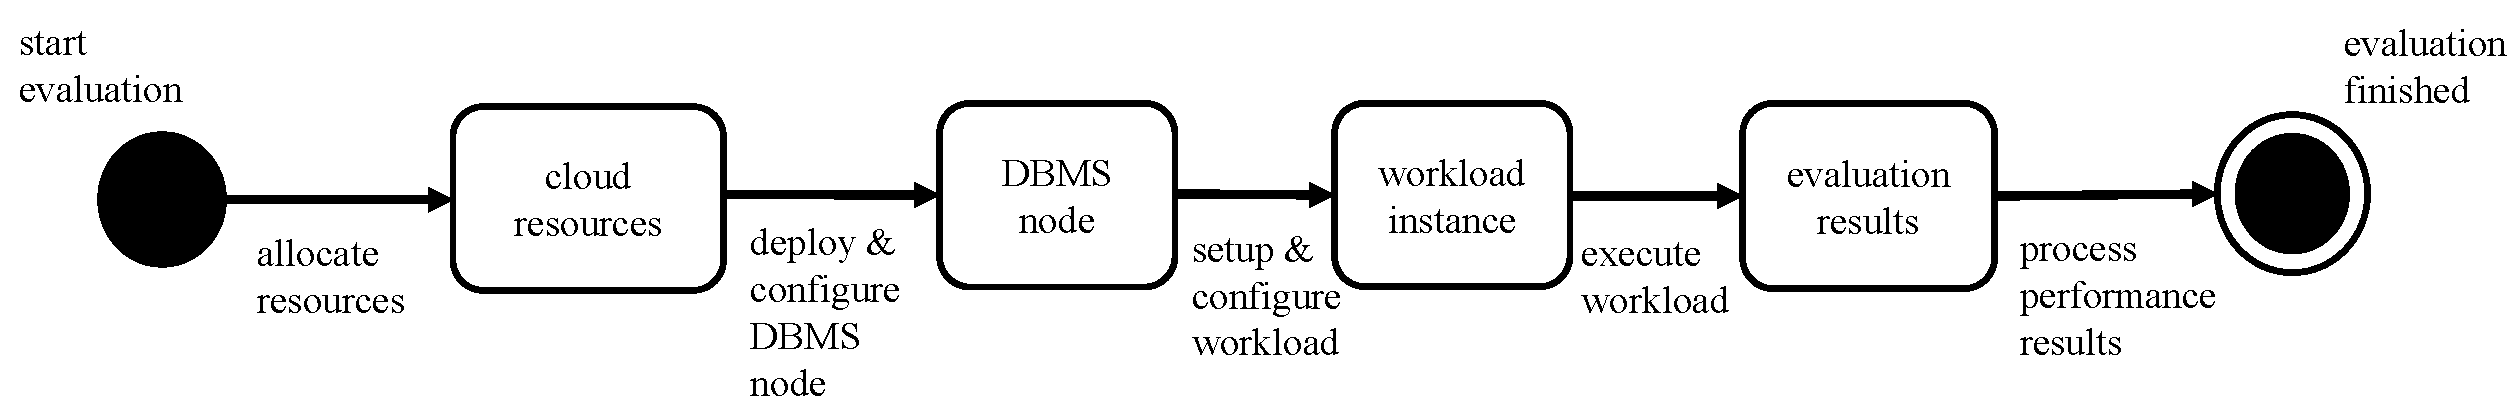 misc/evaluation_process_performance.png